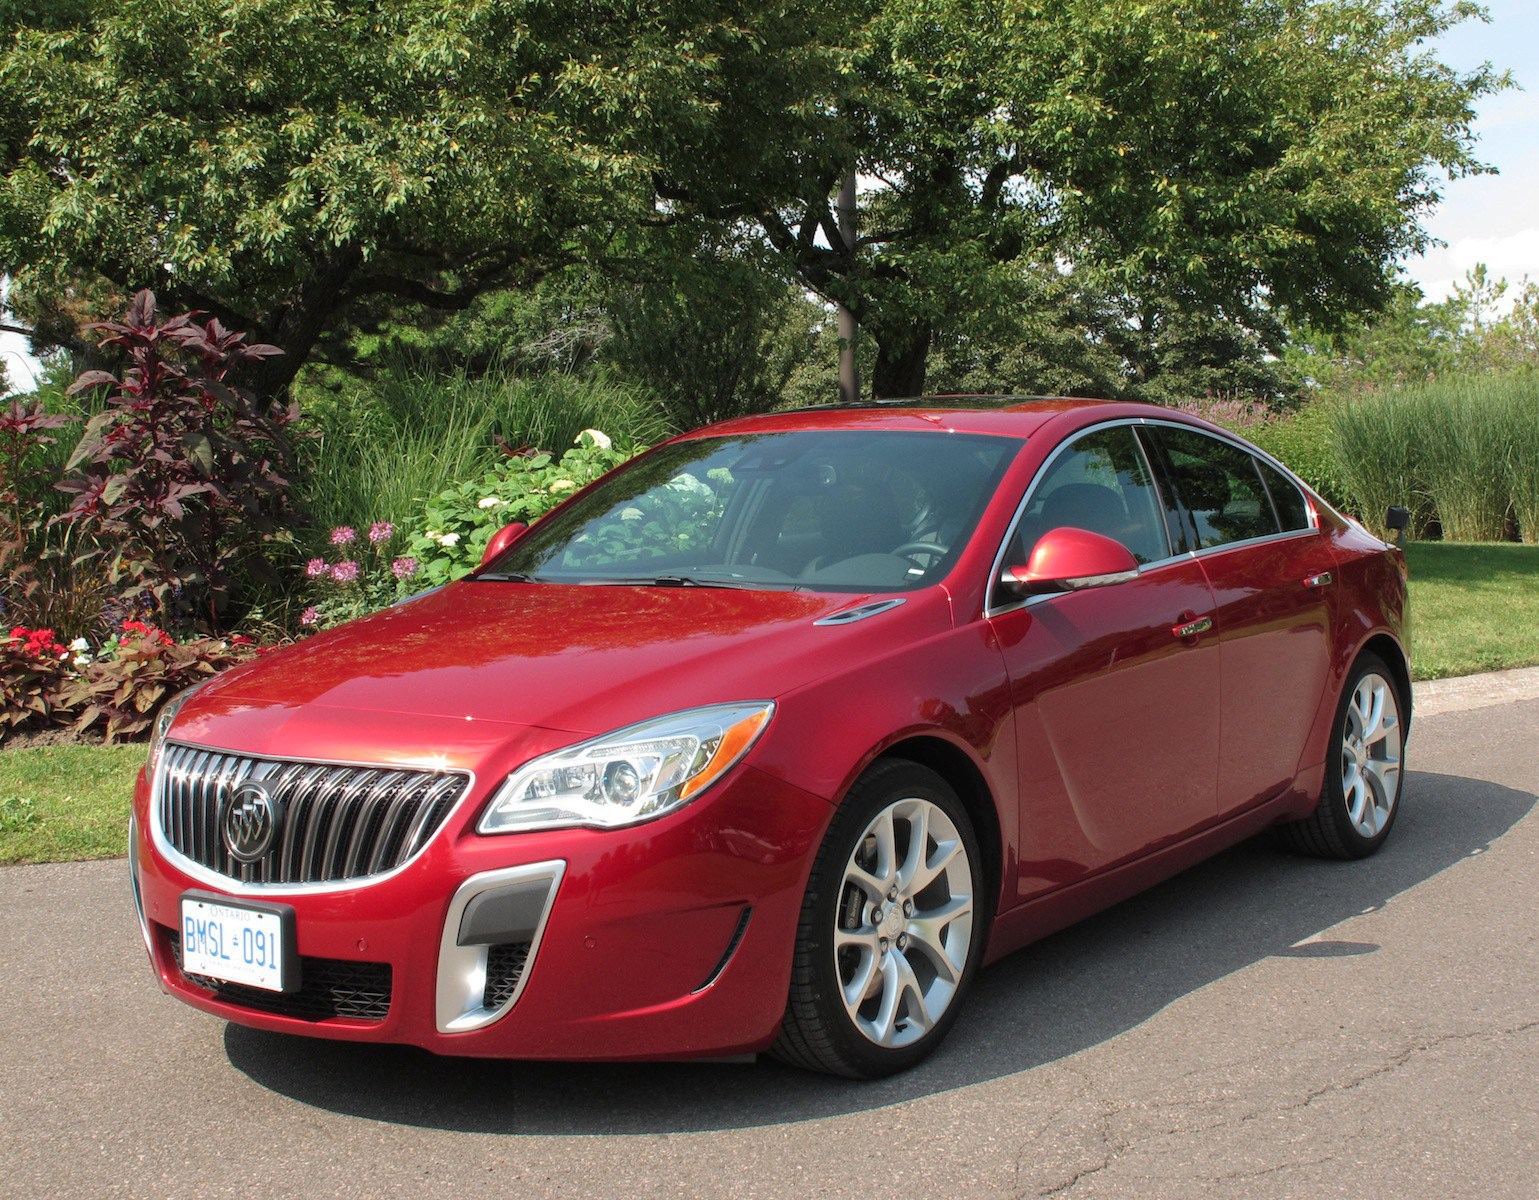 2014 buick regal gs review cars photos test drives. Cars Review. Best American Auto & Cars Review